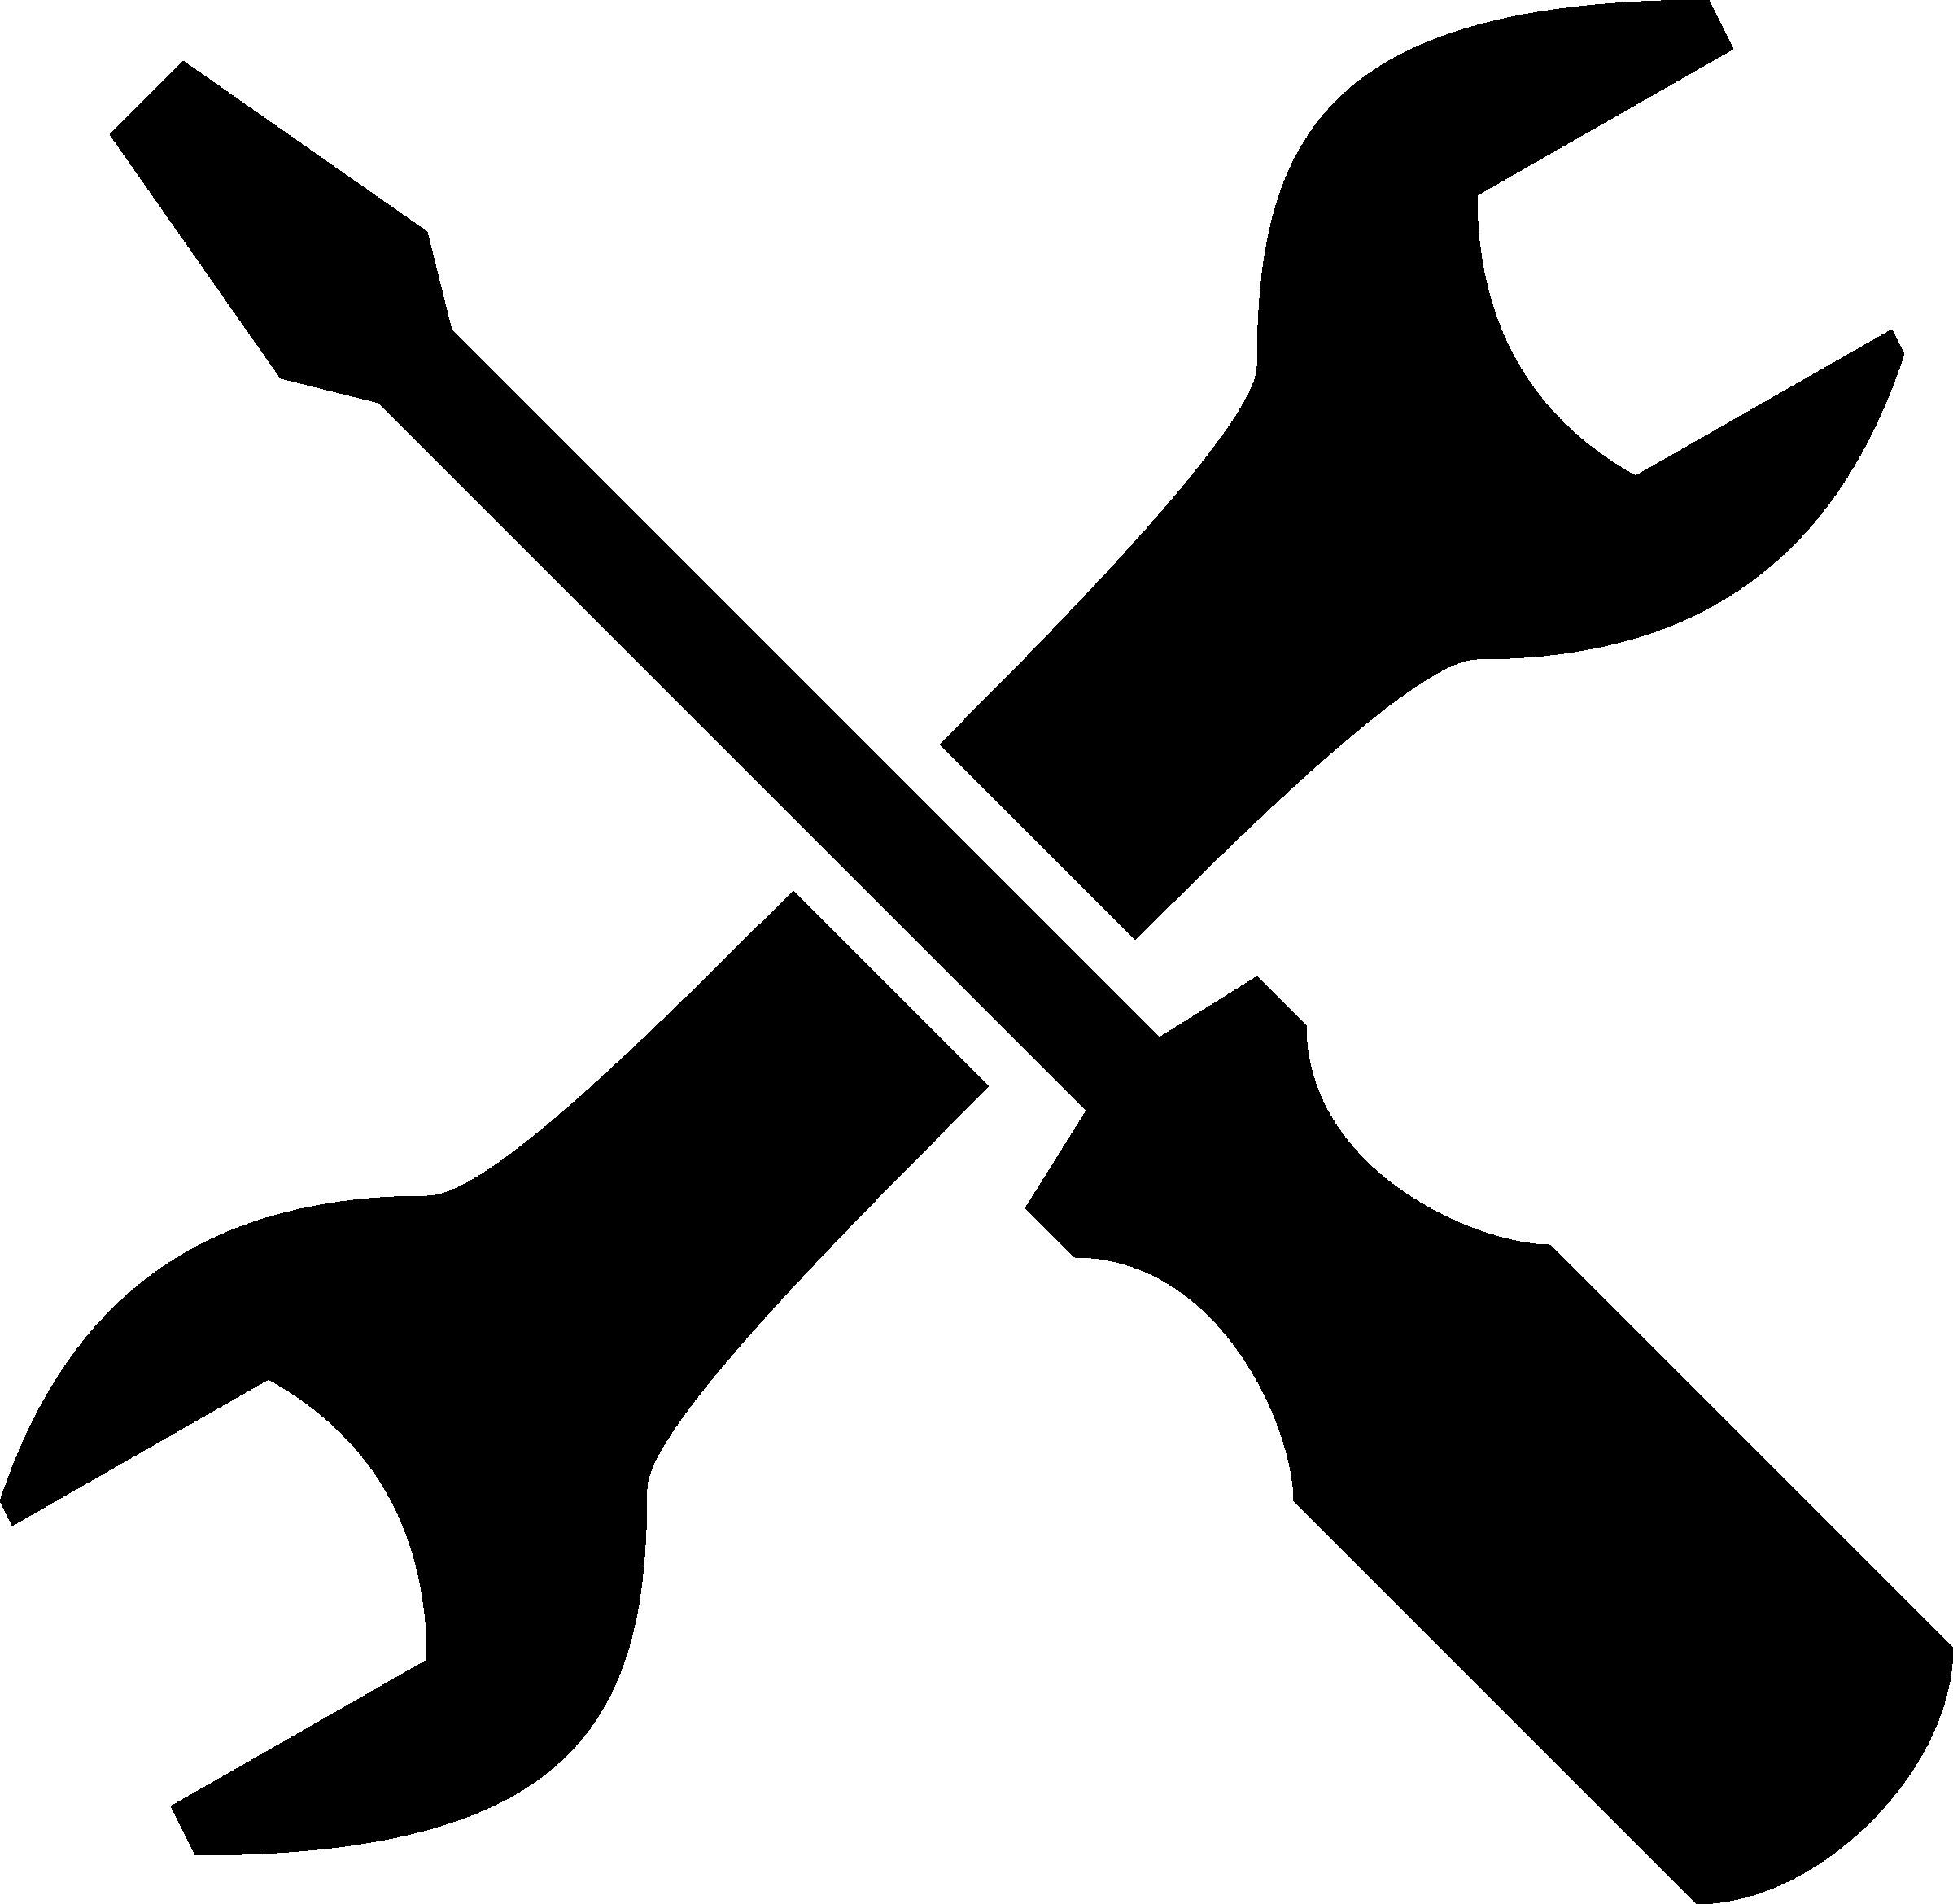 Unique Construction Tools Clip Art Black And White Design.